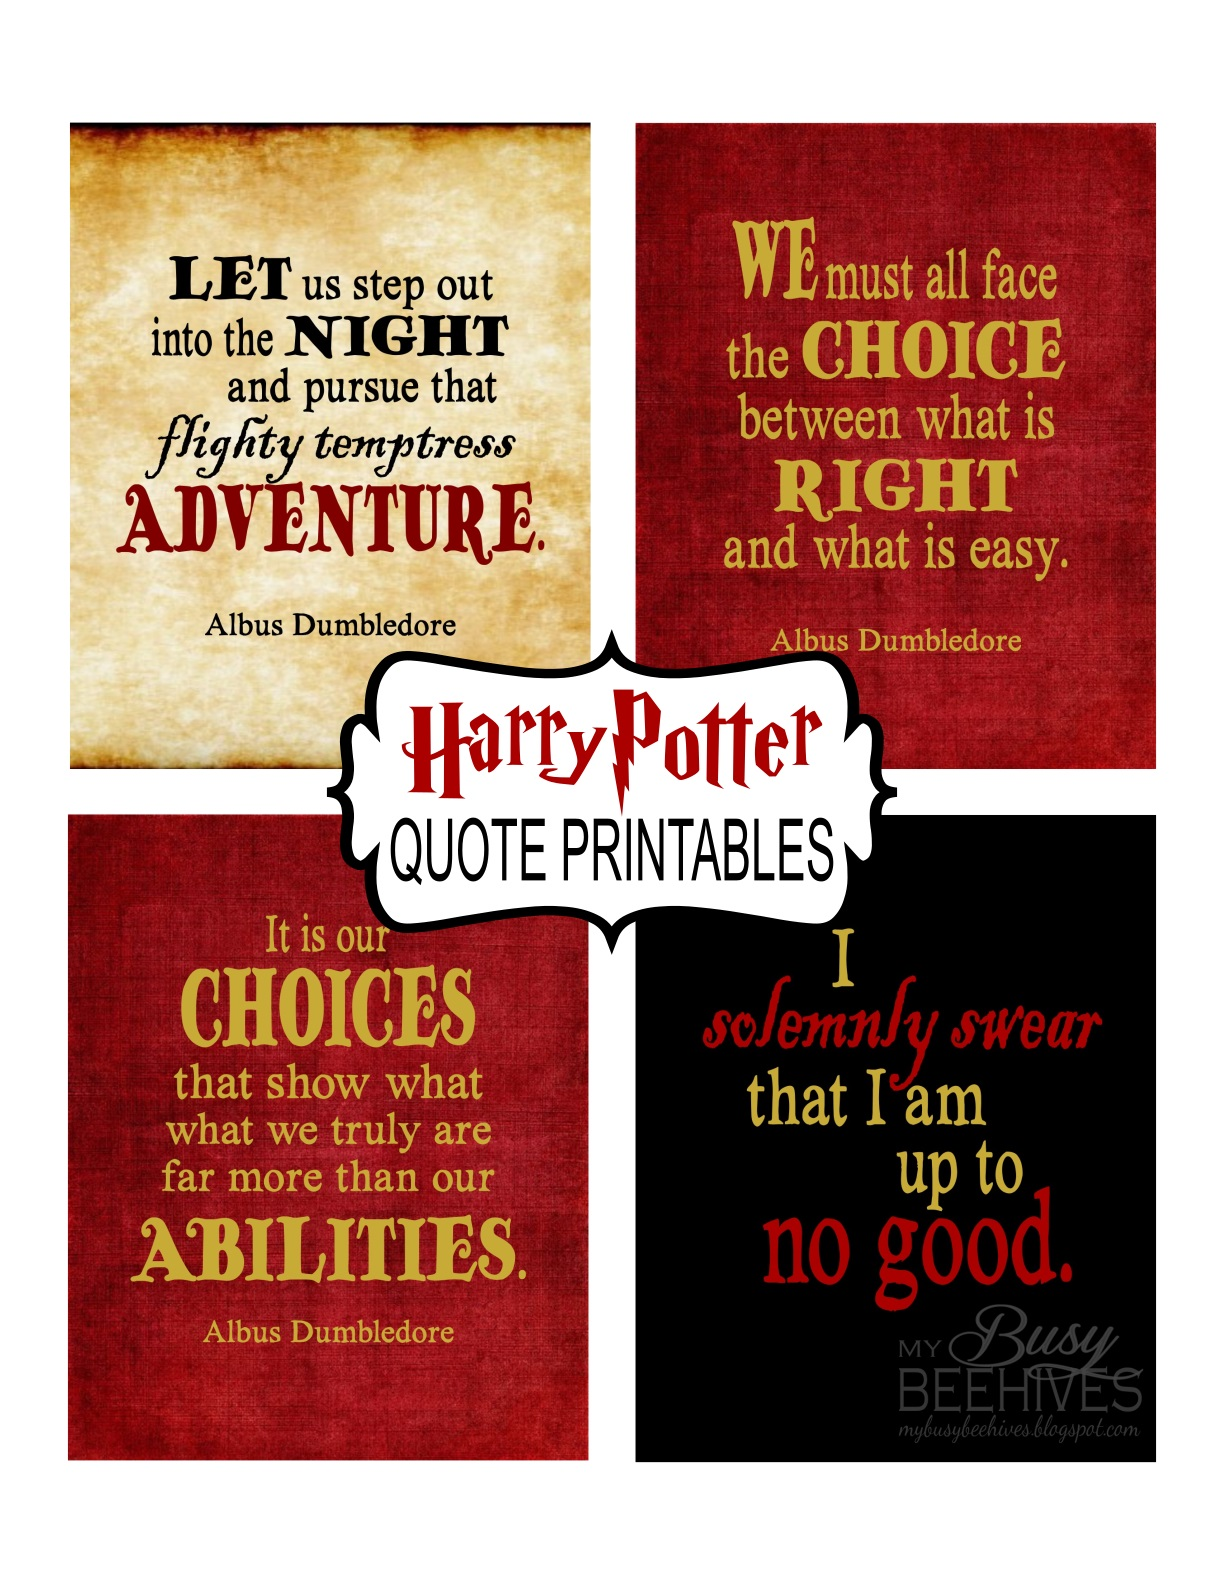 picture relating to Printable Harry Potter Quotes named My Hectic Beehives: Harry Potter Quotation Printables